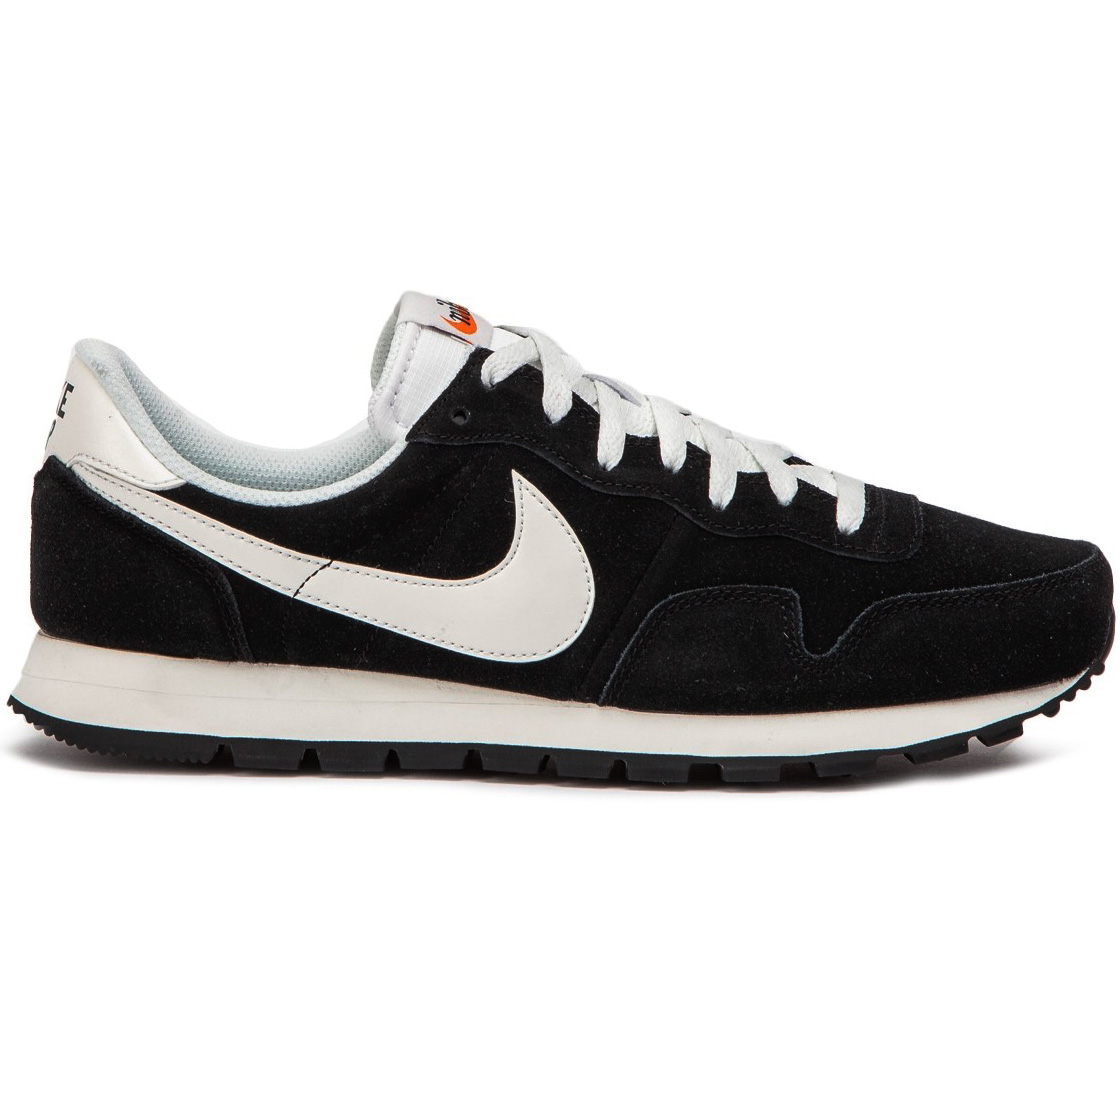 check out 70107 c28b8 Nike Air Pegasus 83 Leather Herren Sneaker schwarz weiß 8279